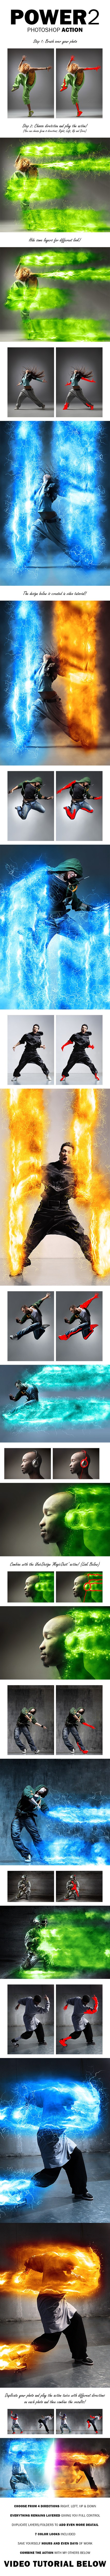 Power 2 Photoshop Action - Photo Effects Actions